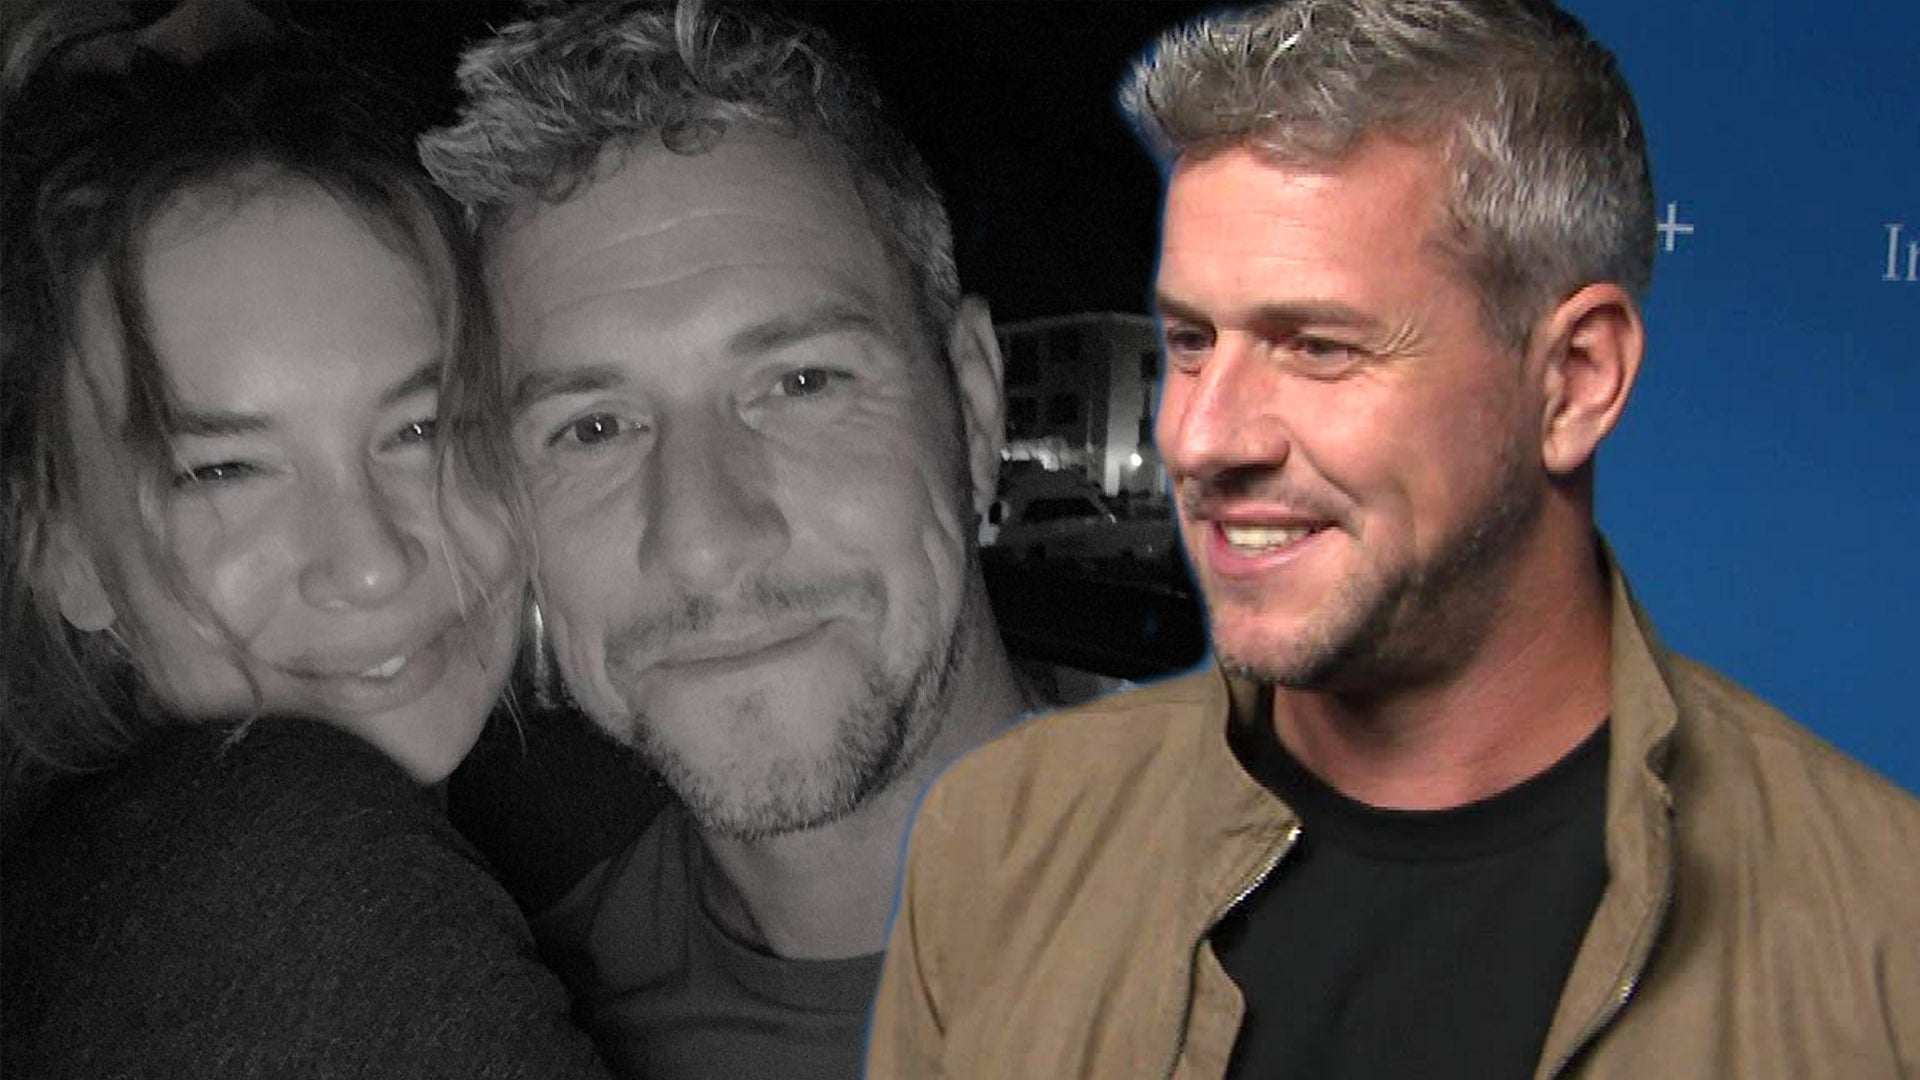 Ant Anstead Dishes on Traveling With Girlfriend Renée Zellweger